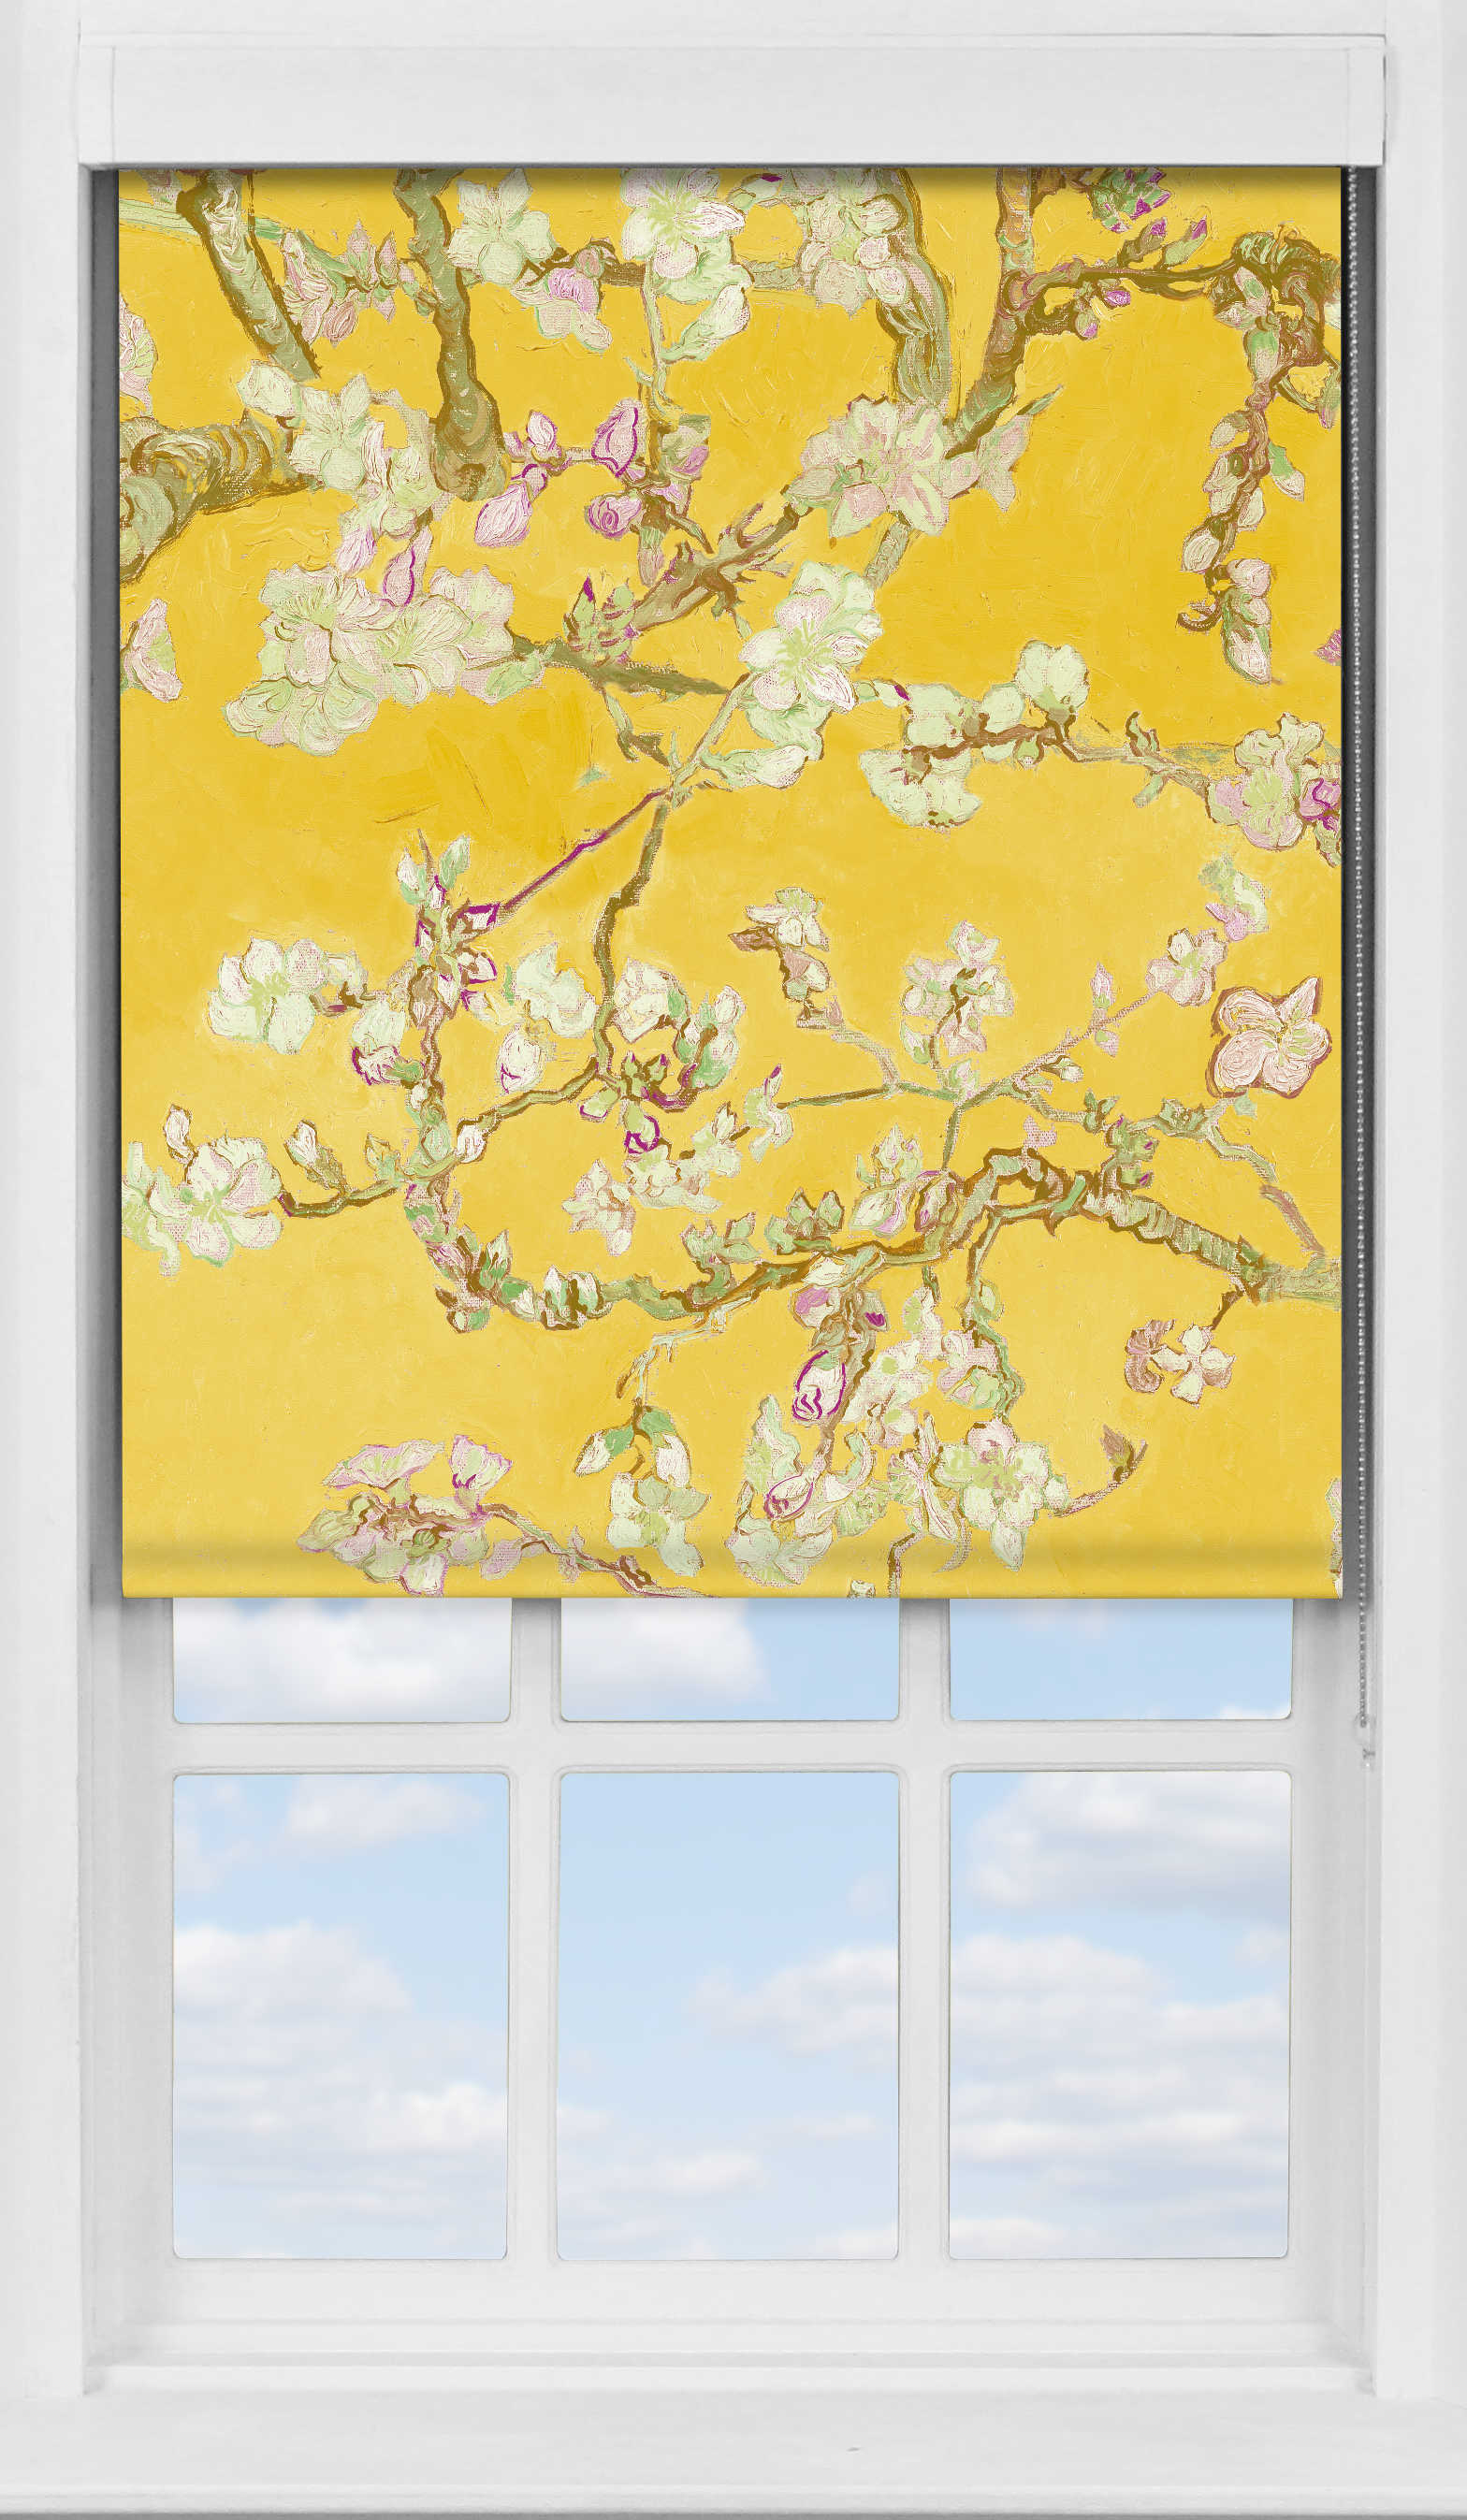 Premium Roller Blind in Van Gogh Almond Blossom Yellow Blackout